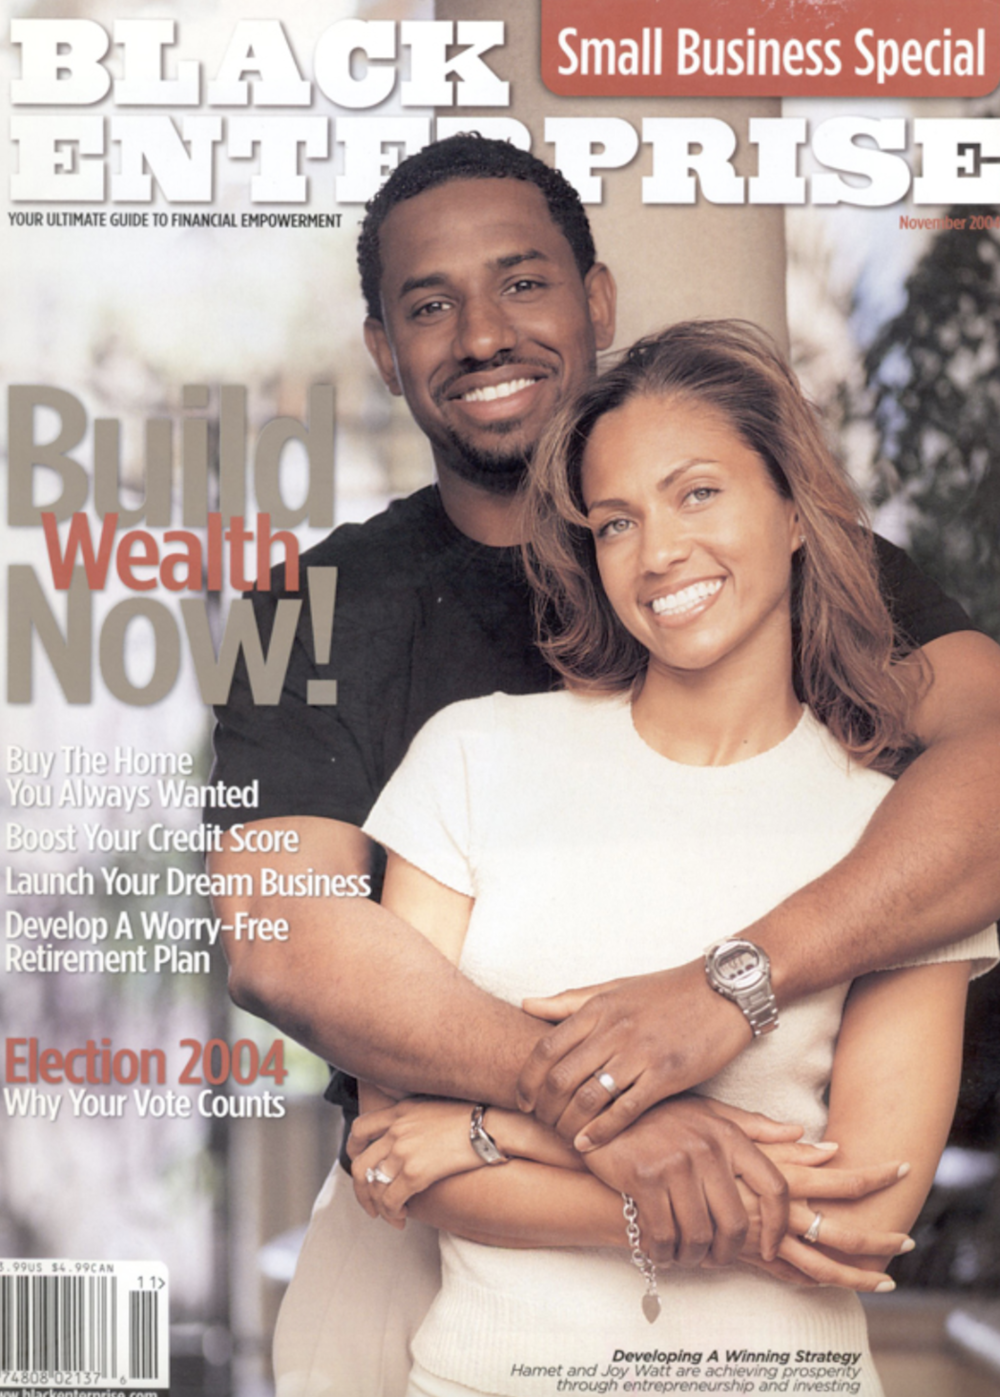 Hamet and Joy Watt for Black Enterprise, 2004